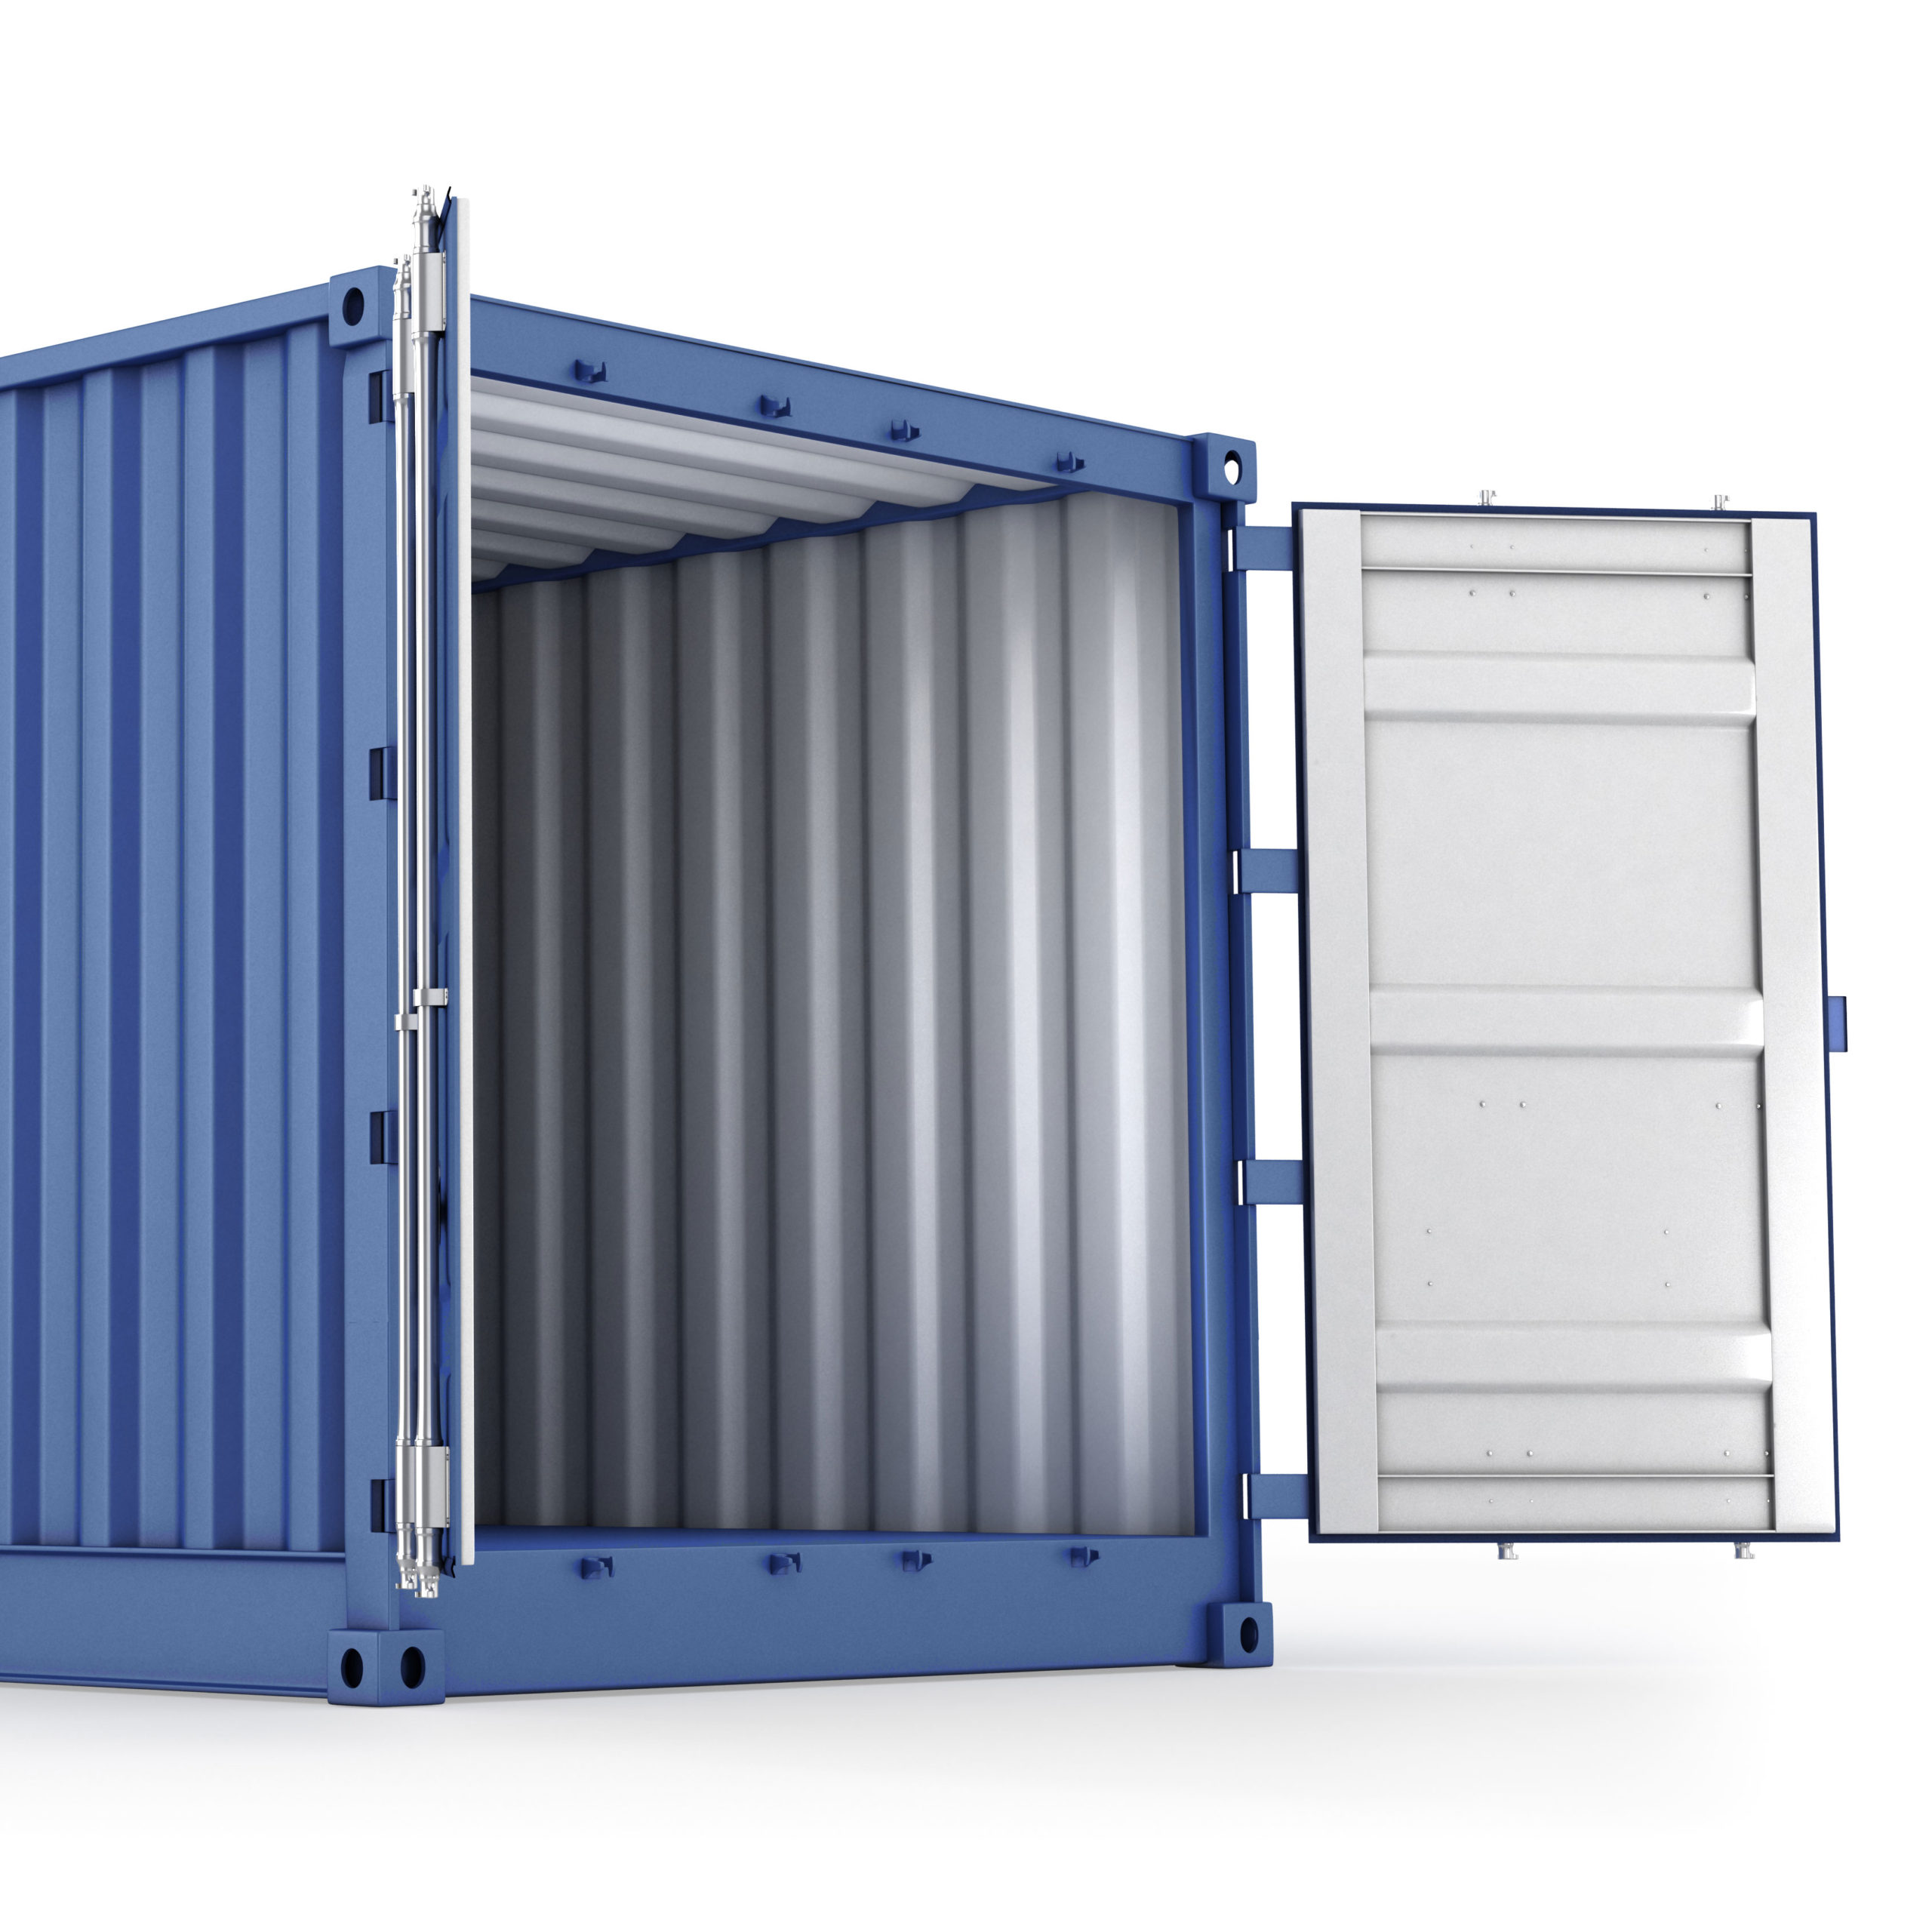 Container-image